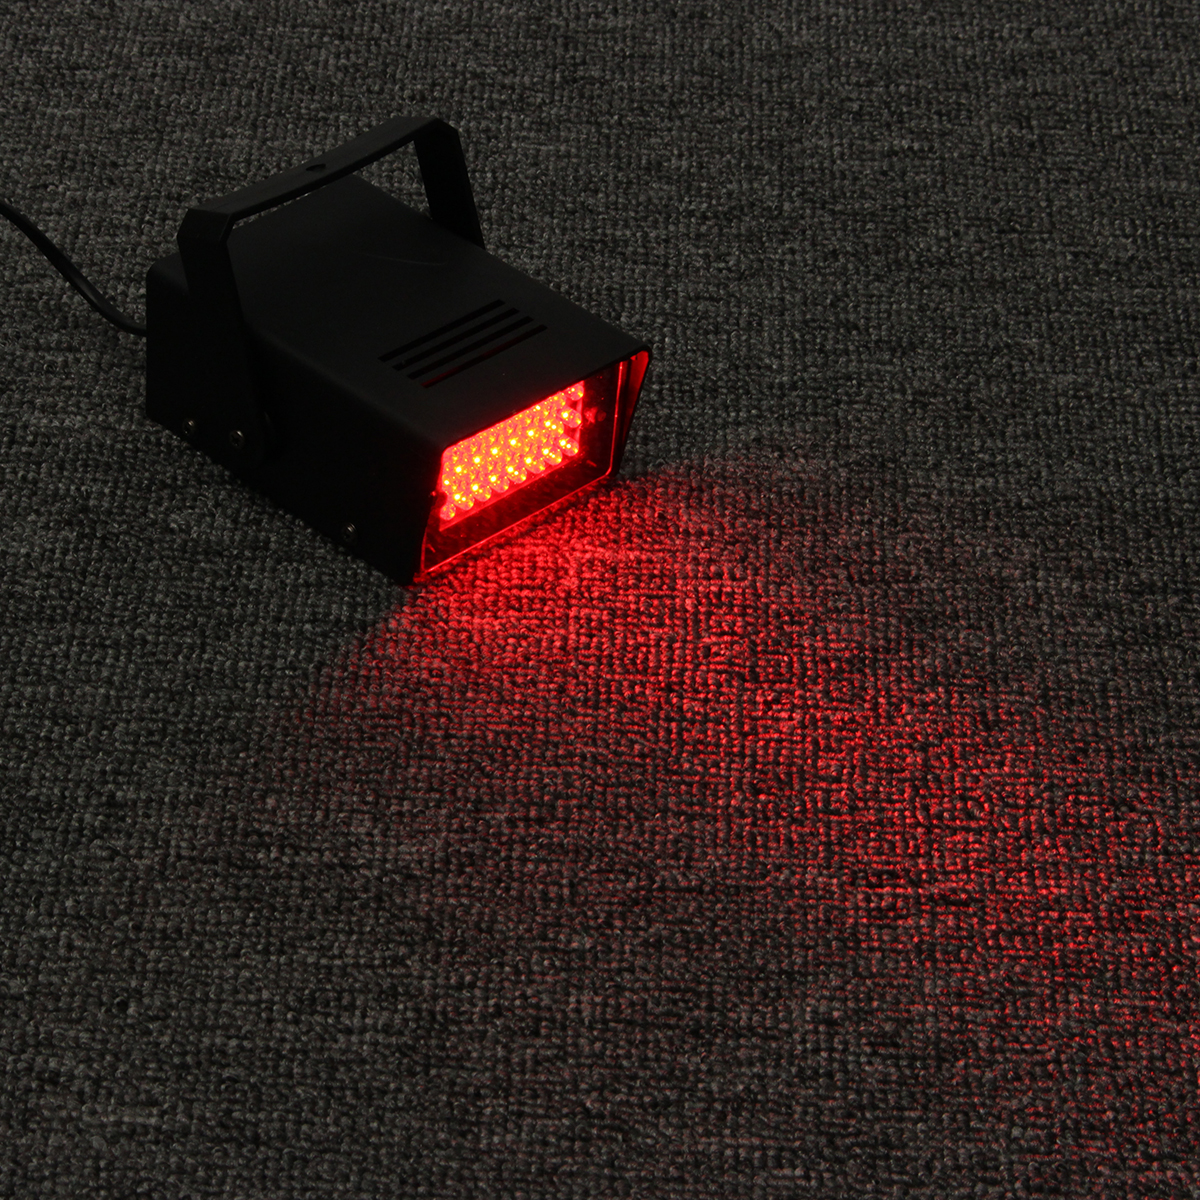 Mini 24LED 3W Red Stage Flashing Light Effect Lamp Strobe DJ Disco Club Party